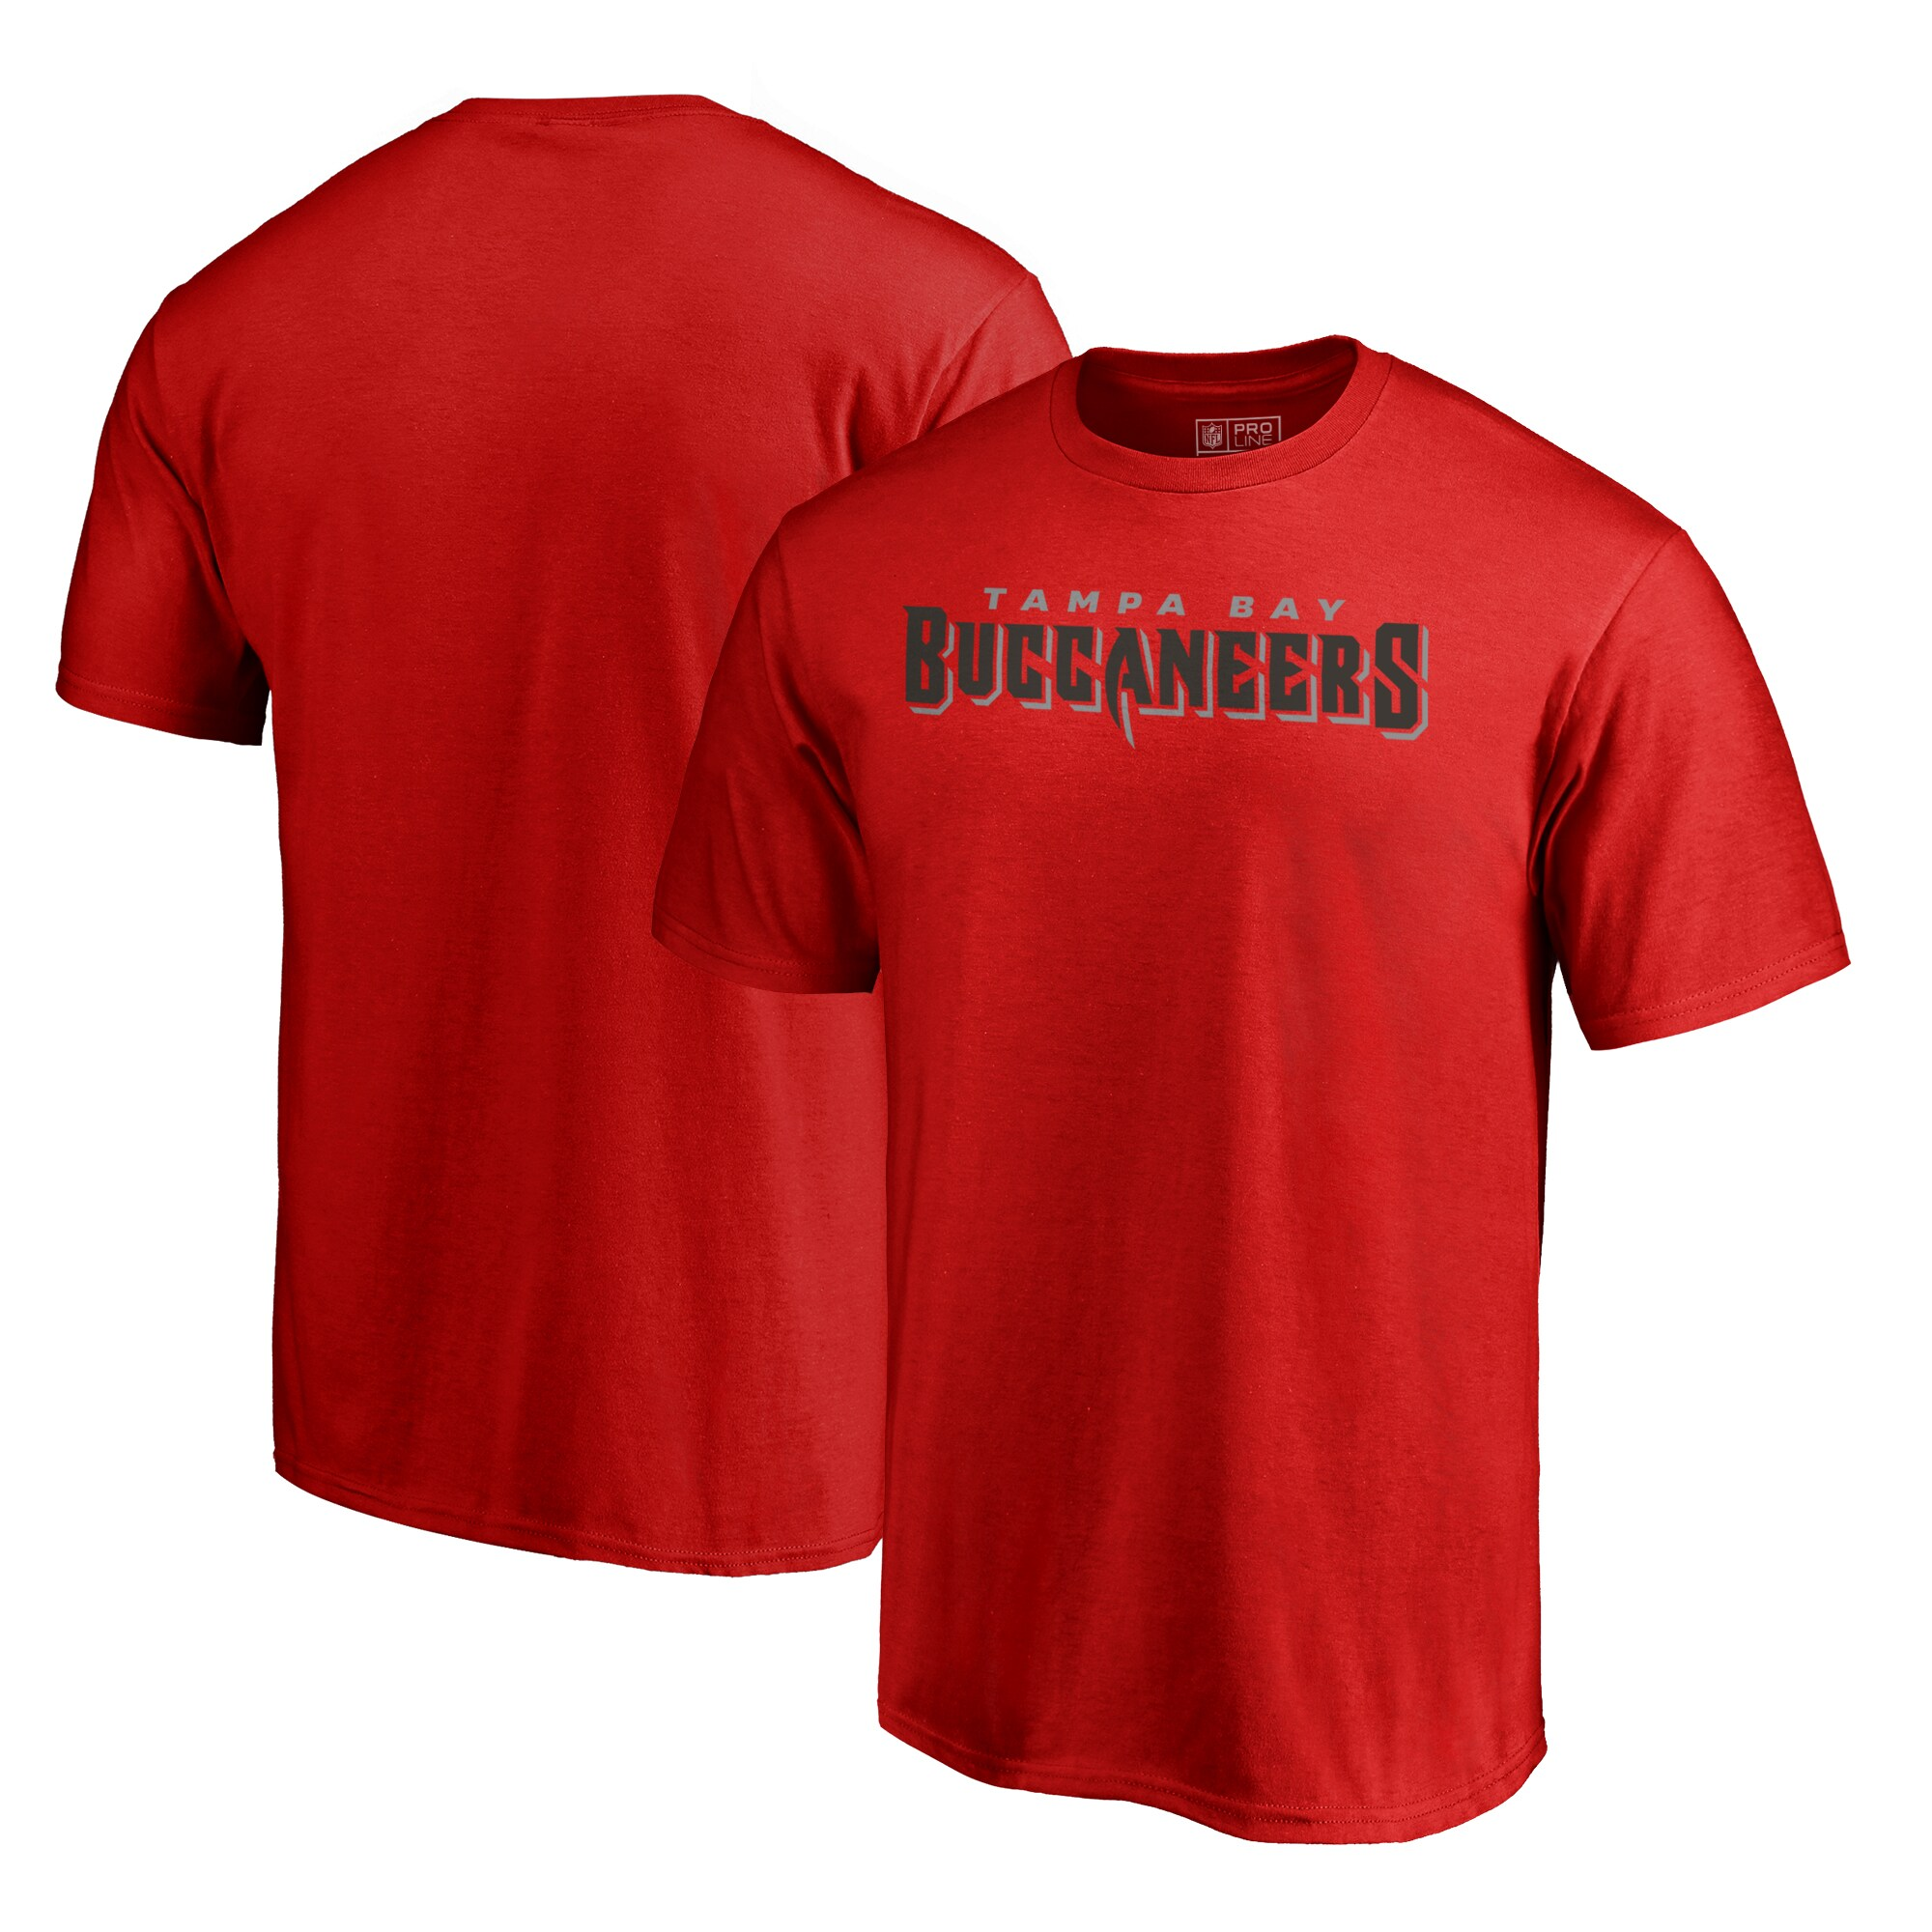 Tampa Bay Buccaneers NFL Pro Line by Fanatics Branded Wordmark Big & Tall T-Shirt - Red